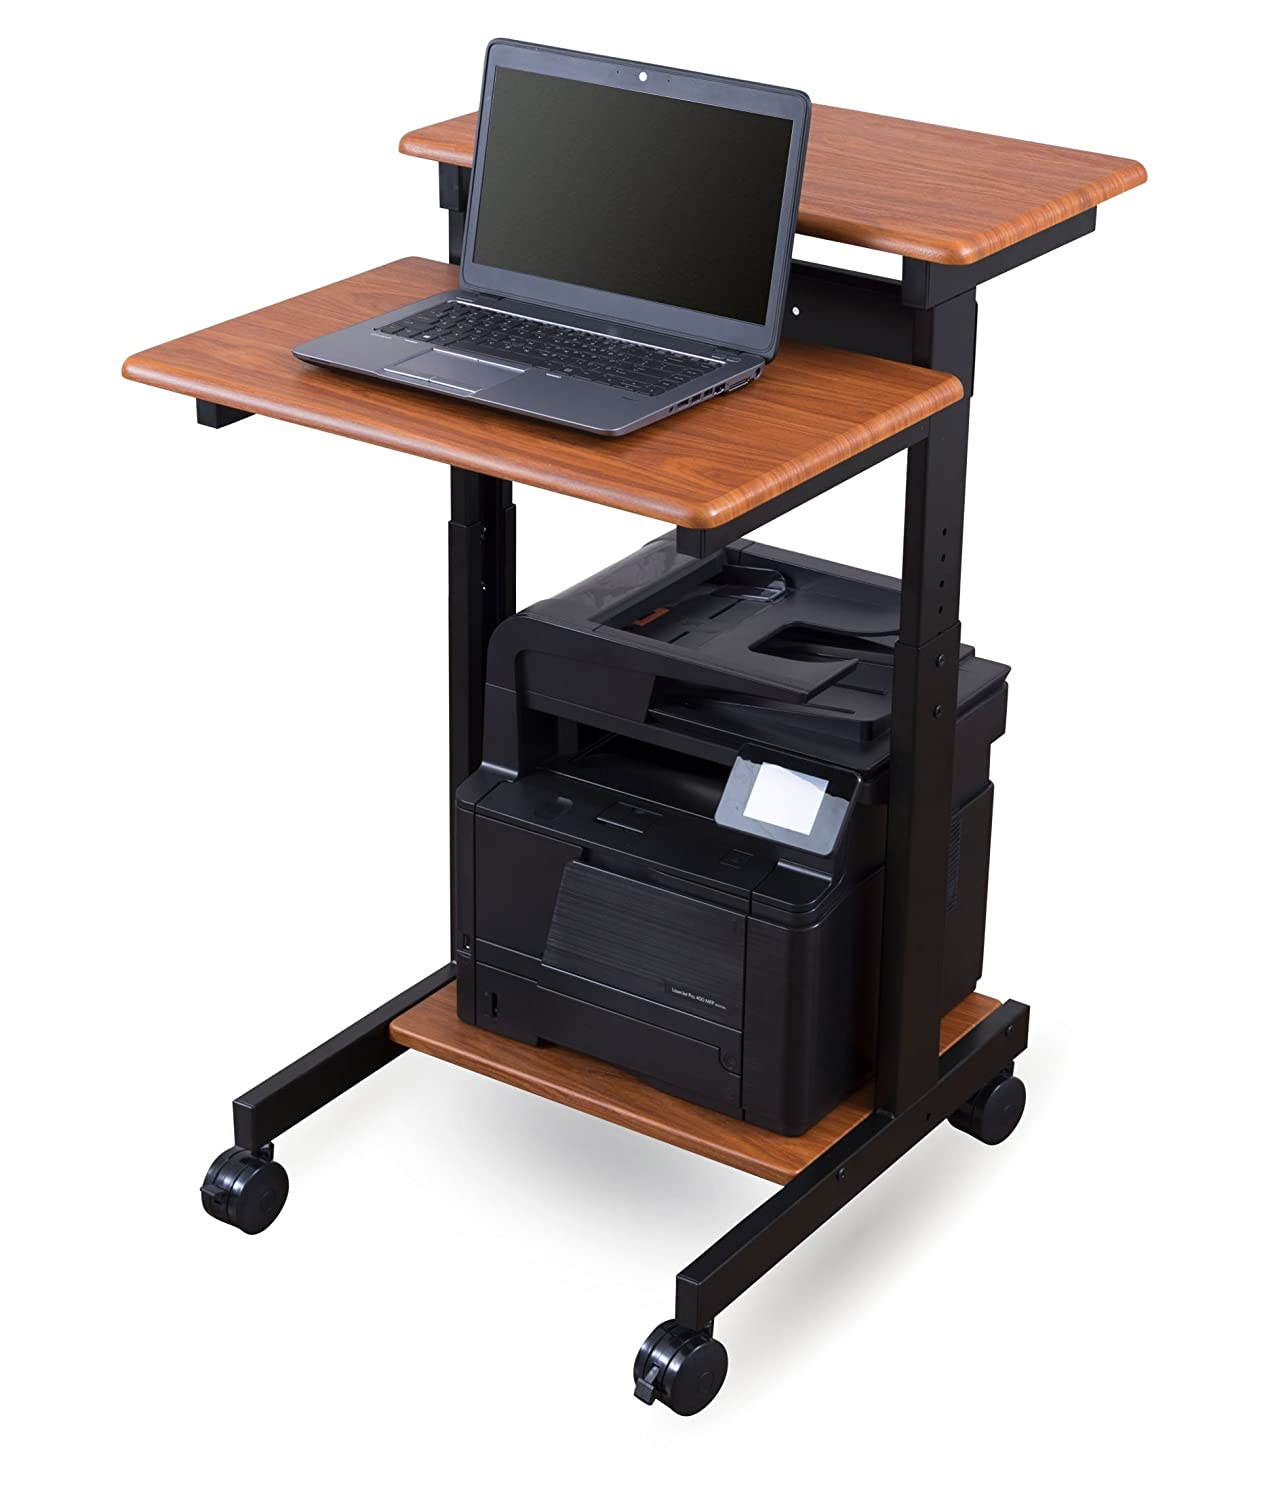 "Mobile Ergonomic Stand up Desk Computer Workstation (24"", Teak)"